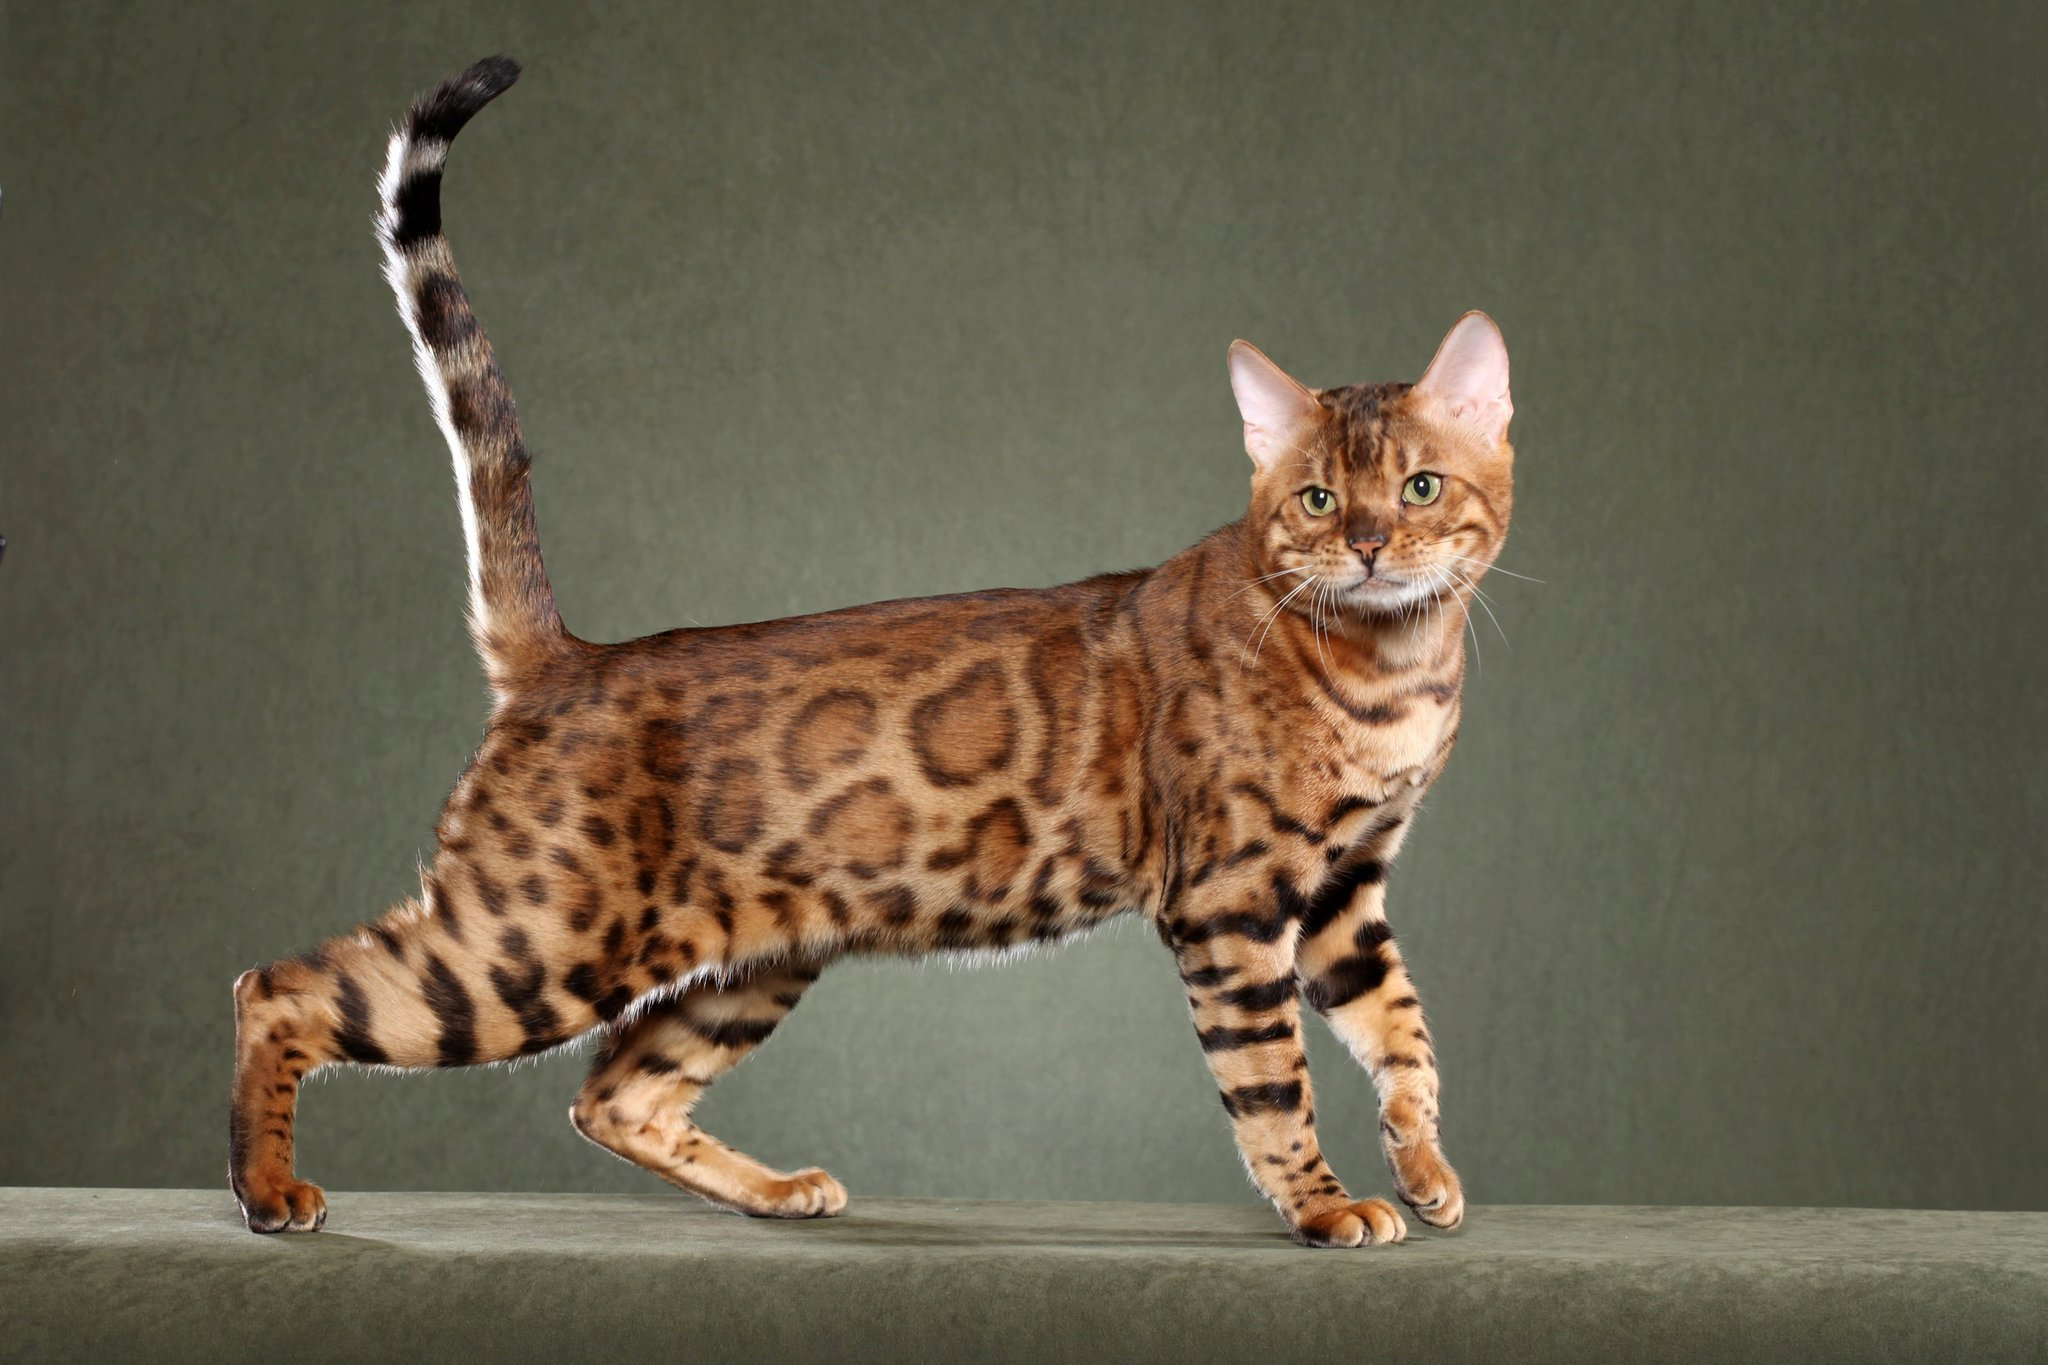 Bengal kittens for sale in PA, 6 Common Health Problems in Cats- Bengal Kittens for Sale in Pa